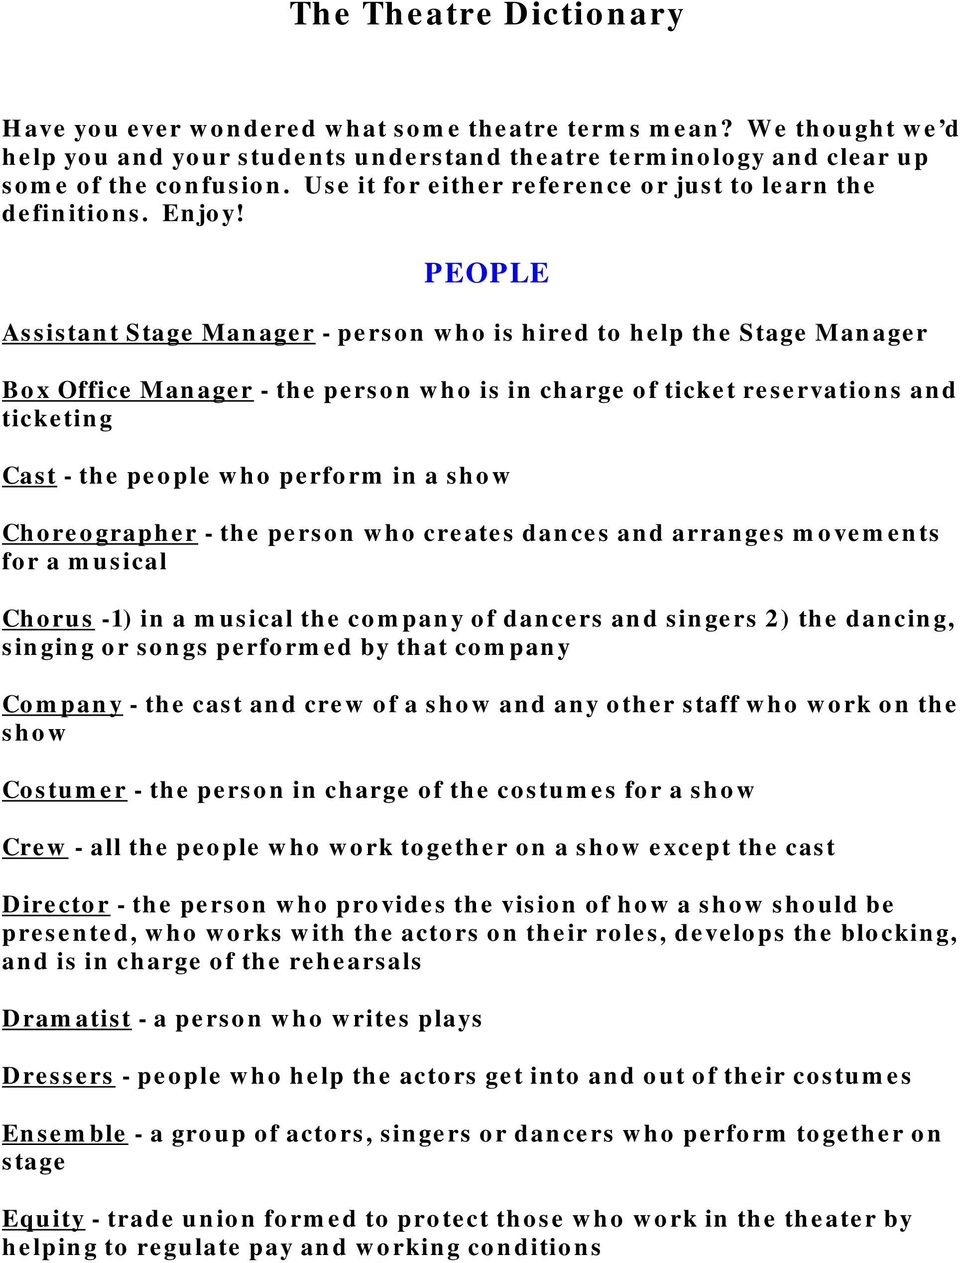 PEOPLE Assistant Stage Manager - person who is hired to help the Stage Manager Box Office Manager - the person who is in charge of ticket reservations and ticketing Cast - the people who perform in a